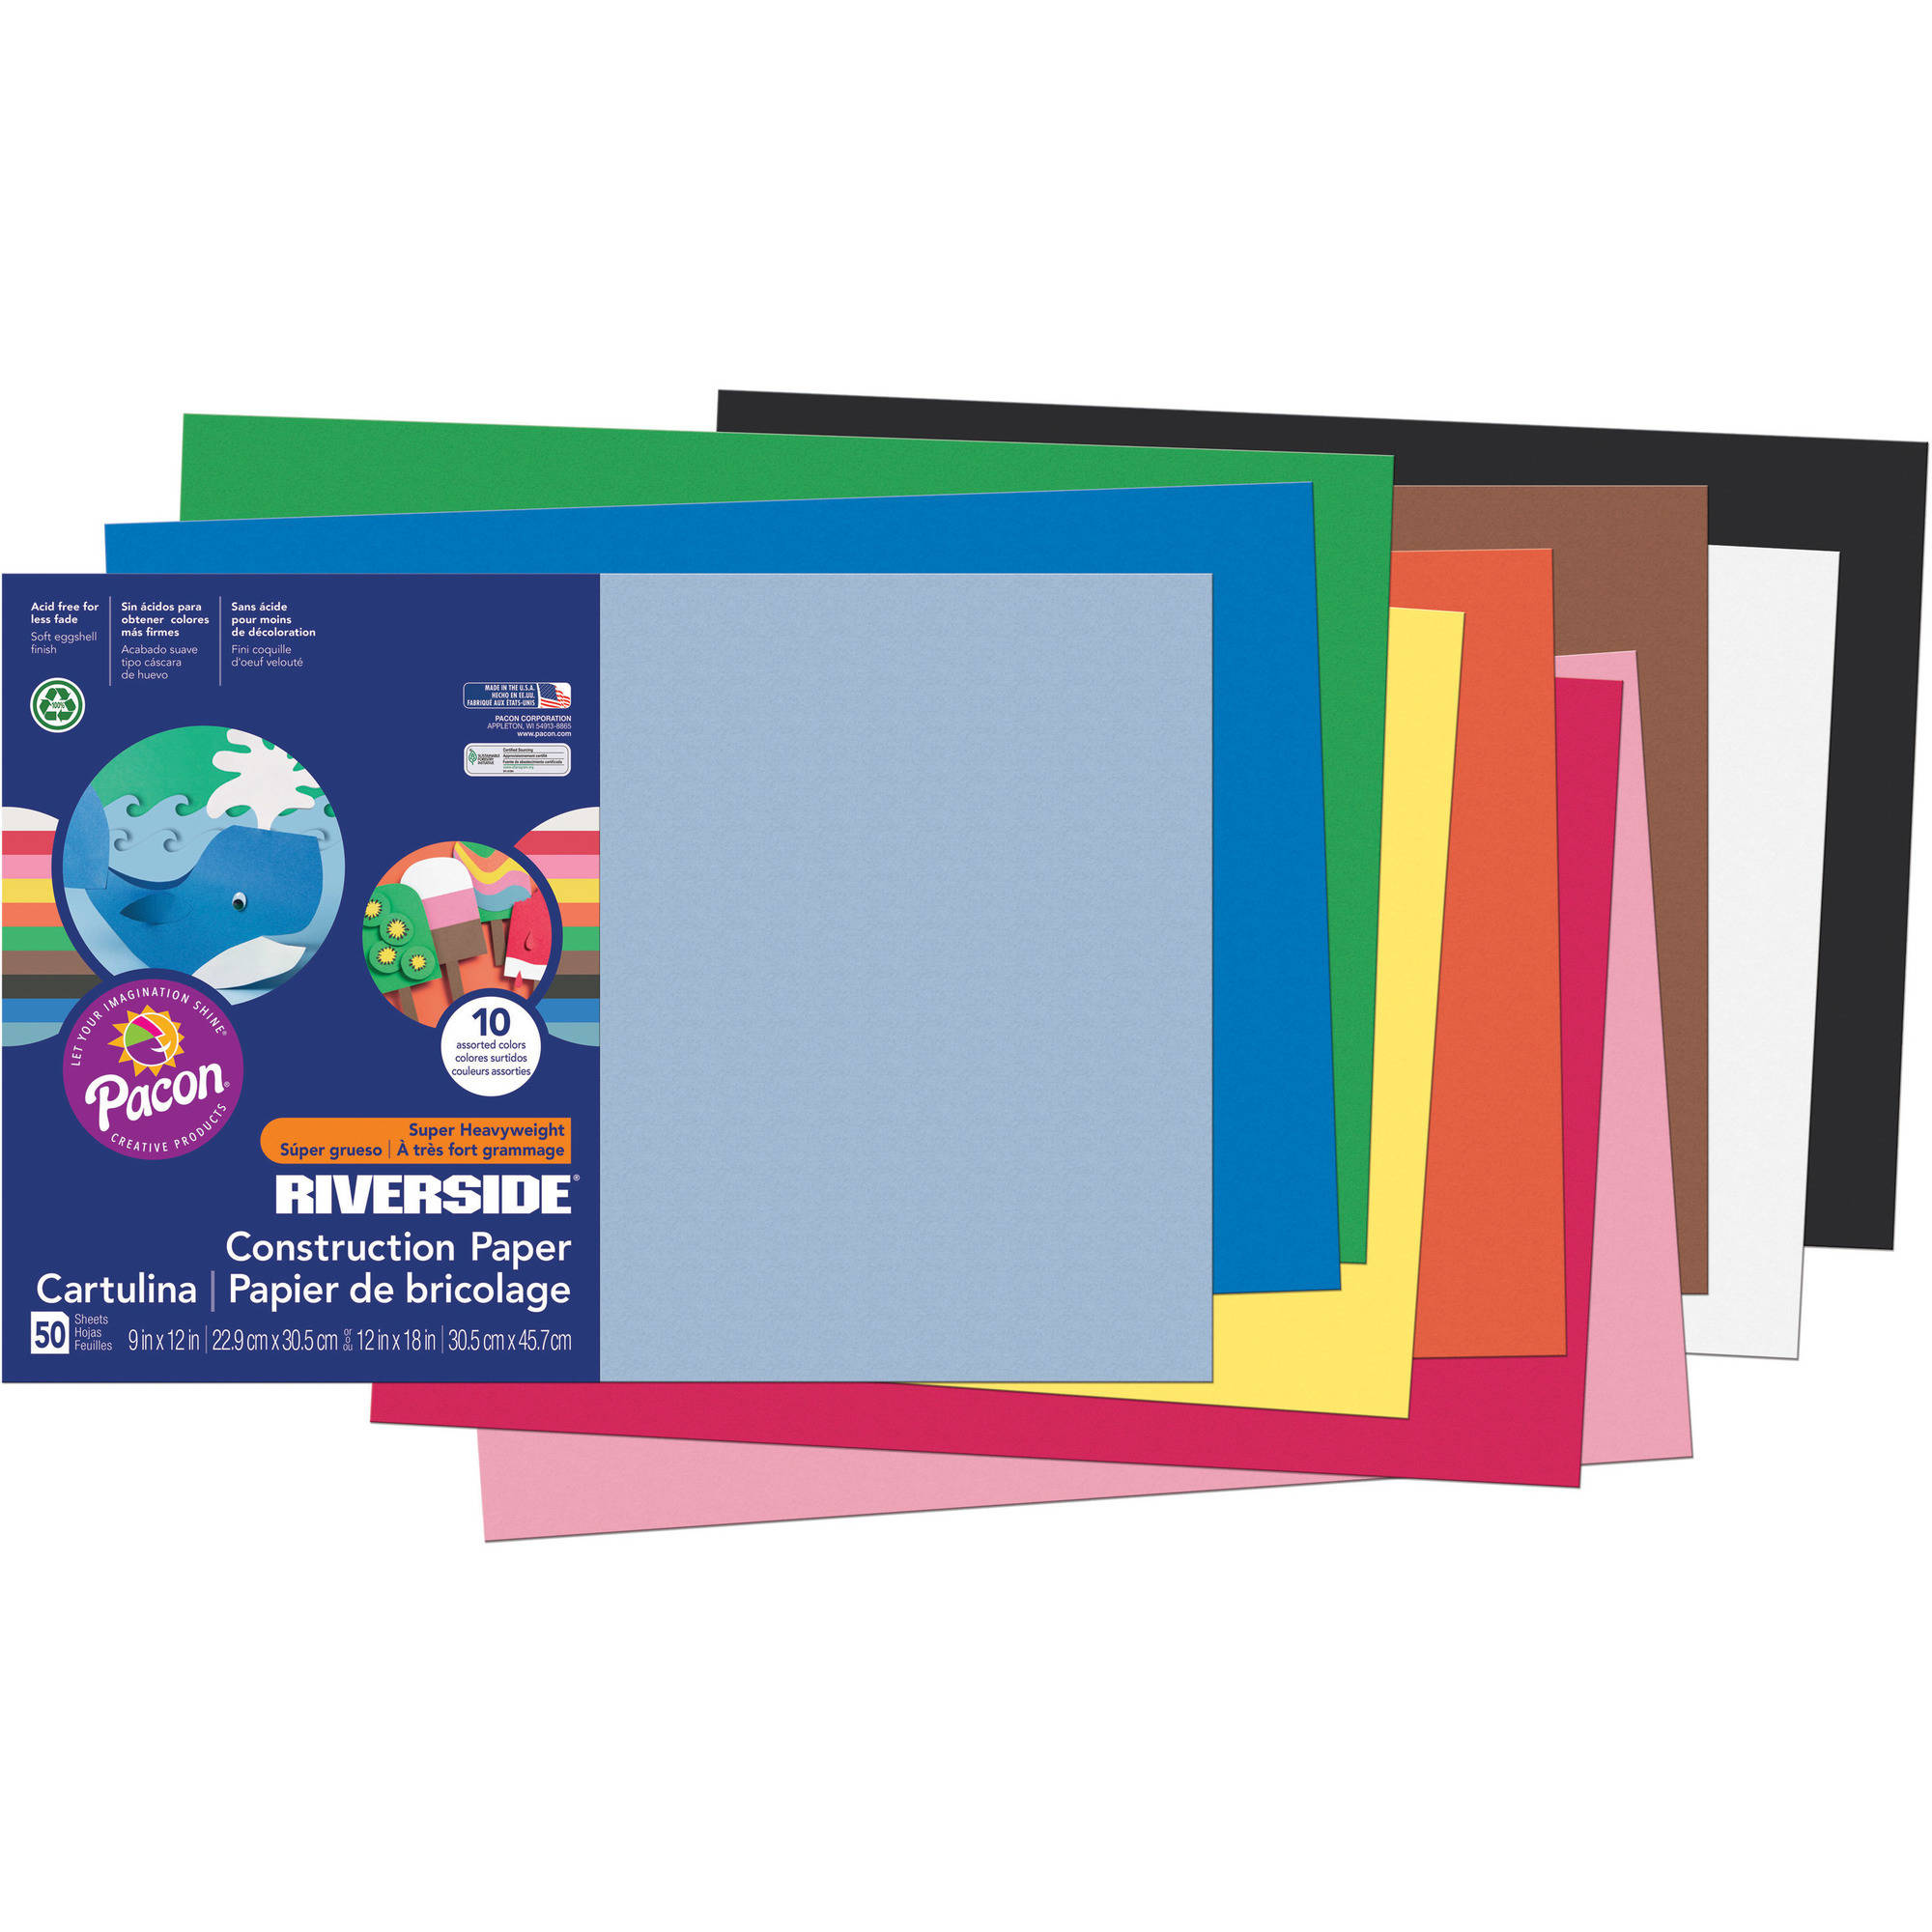 "Riverside  Construction Paper, 12"" x 18"", Assorted Colors, 50 Sheets"